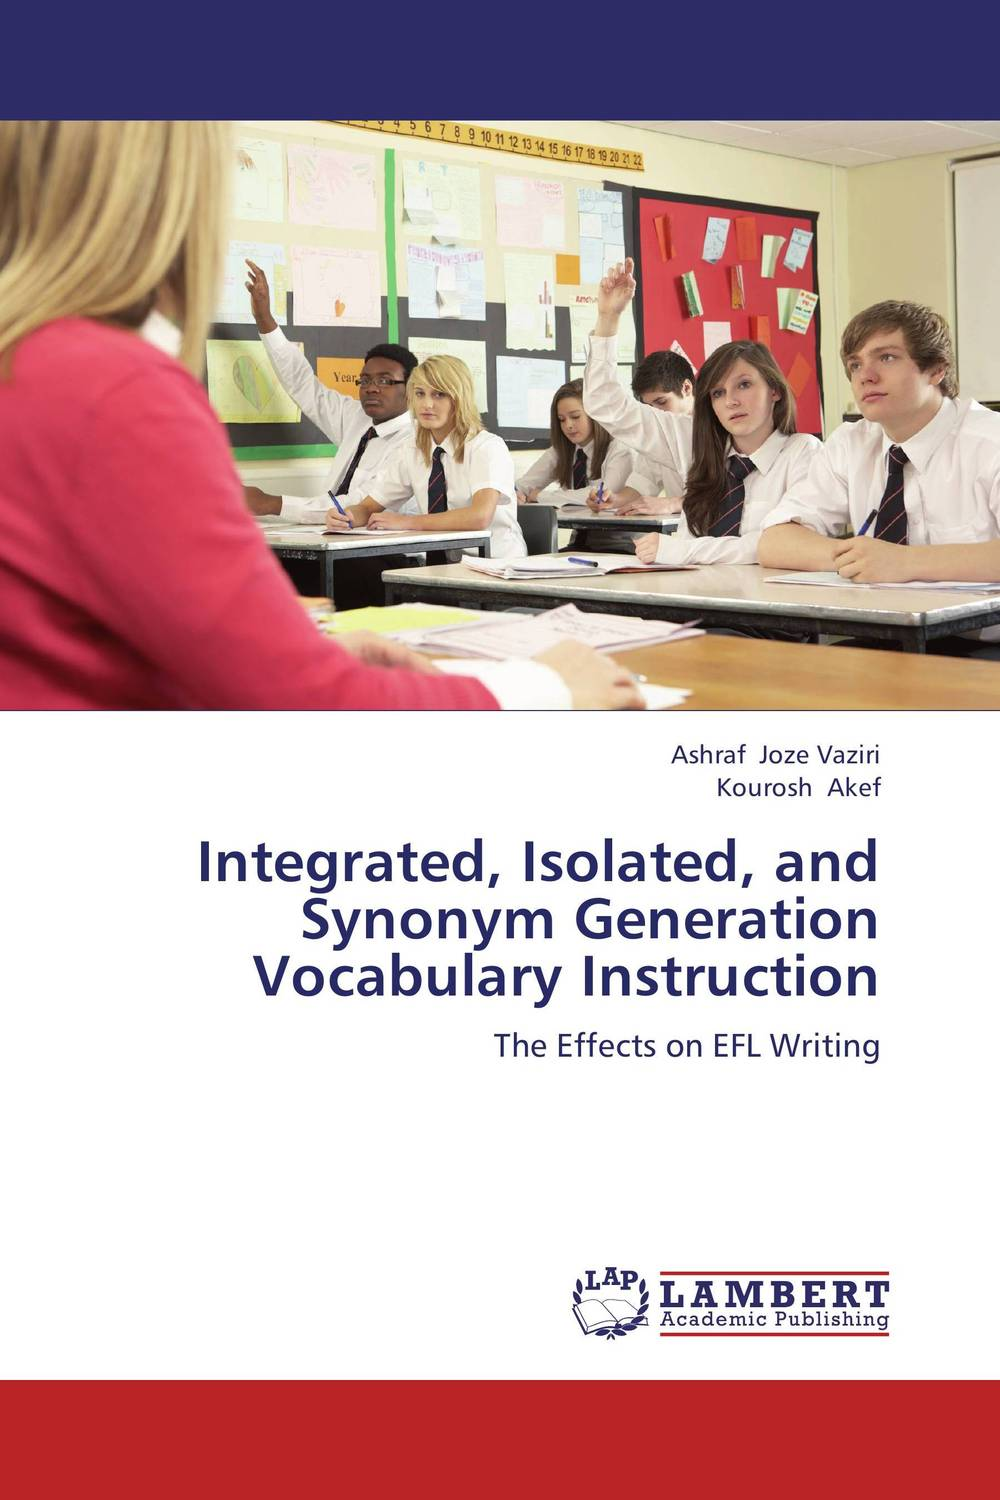 Integrated, Isolated, and Synonym Generation Vocabulary Instruction